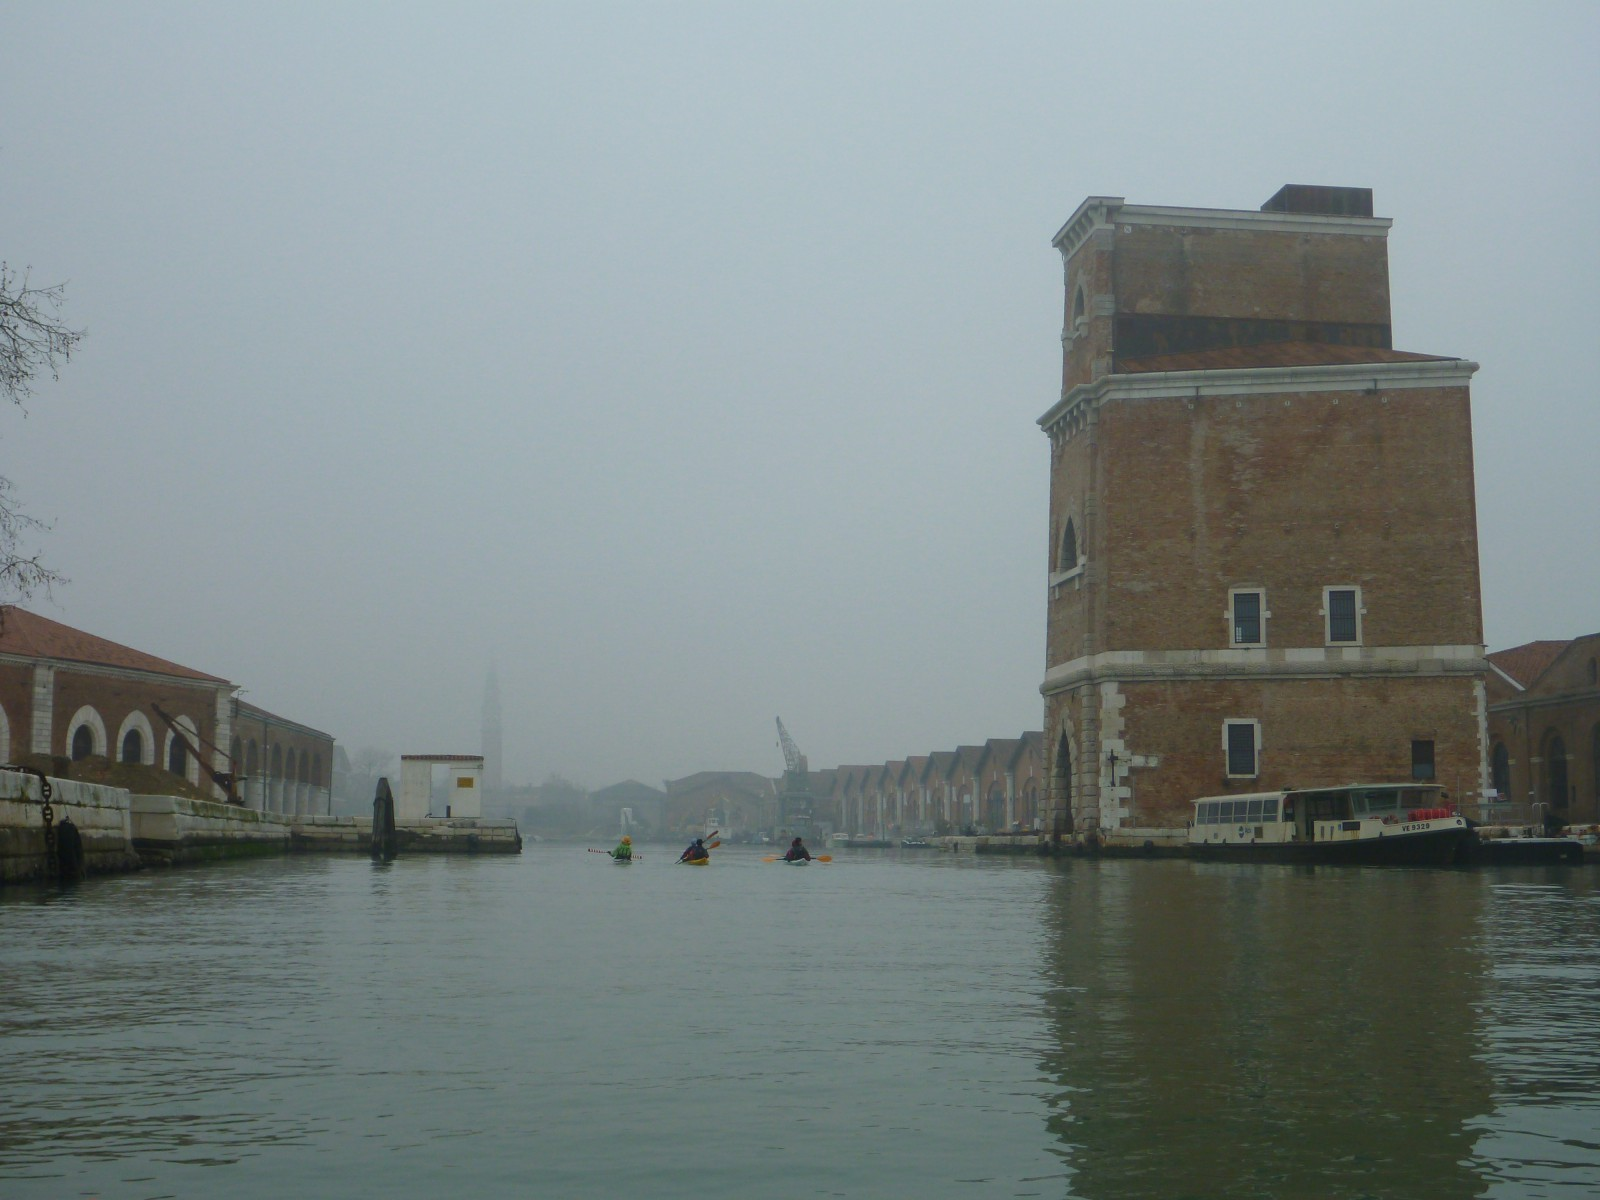 Entering the Arsenale